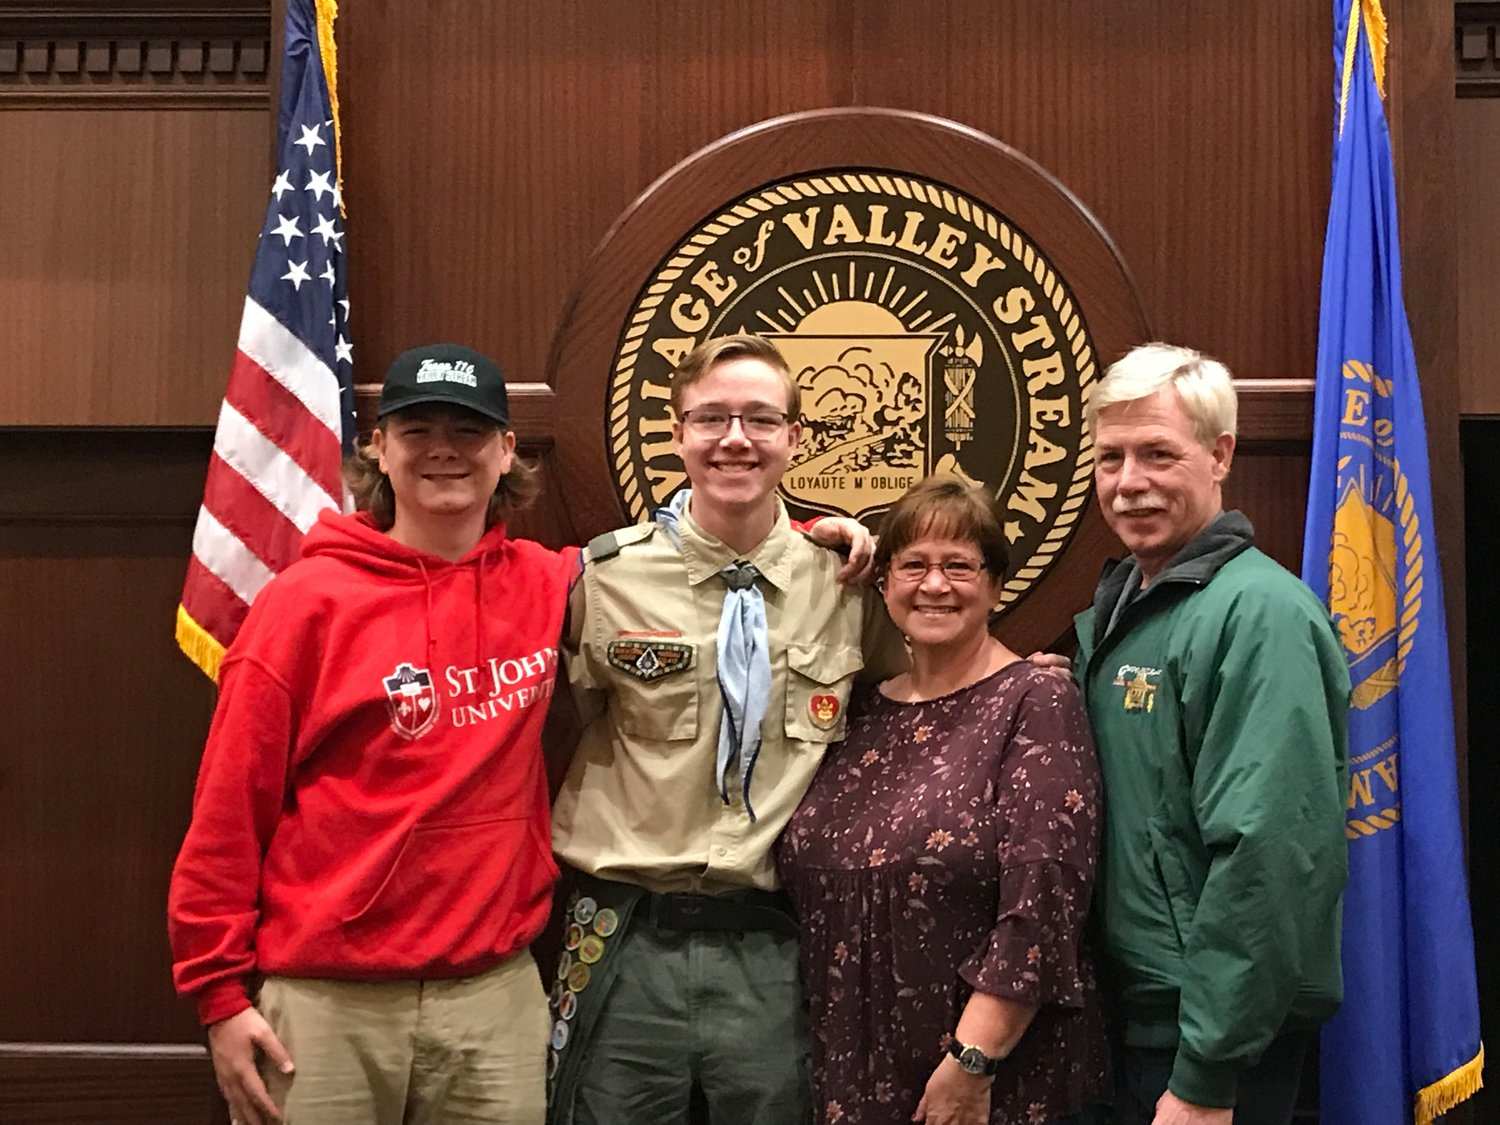 Matthew Donoghue, second from left, became an Eagle Scout on Oct. 8. He is pictured here with Kevin Donoghue, Dianne Donoghue and Ed Donoghue.